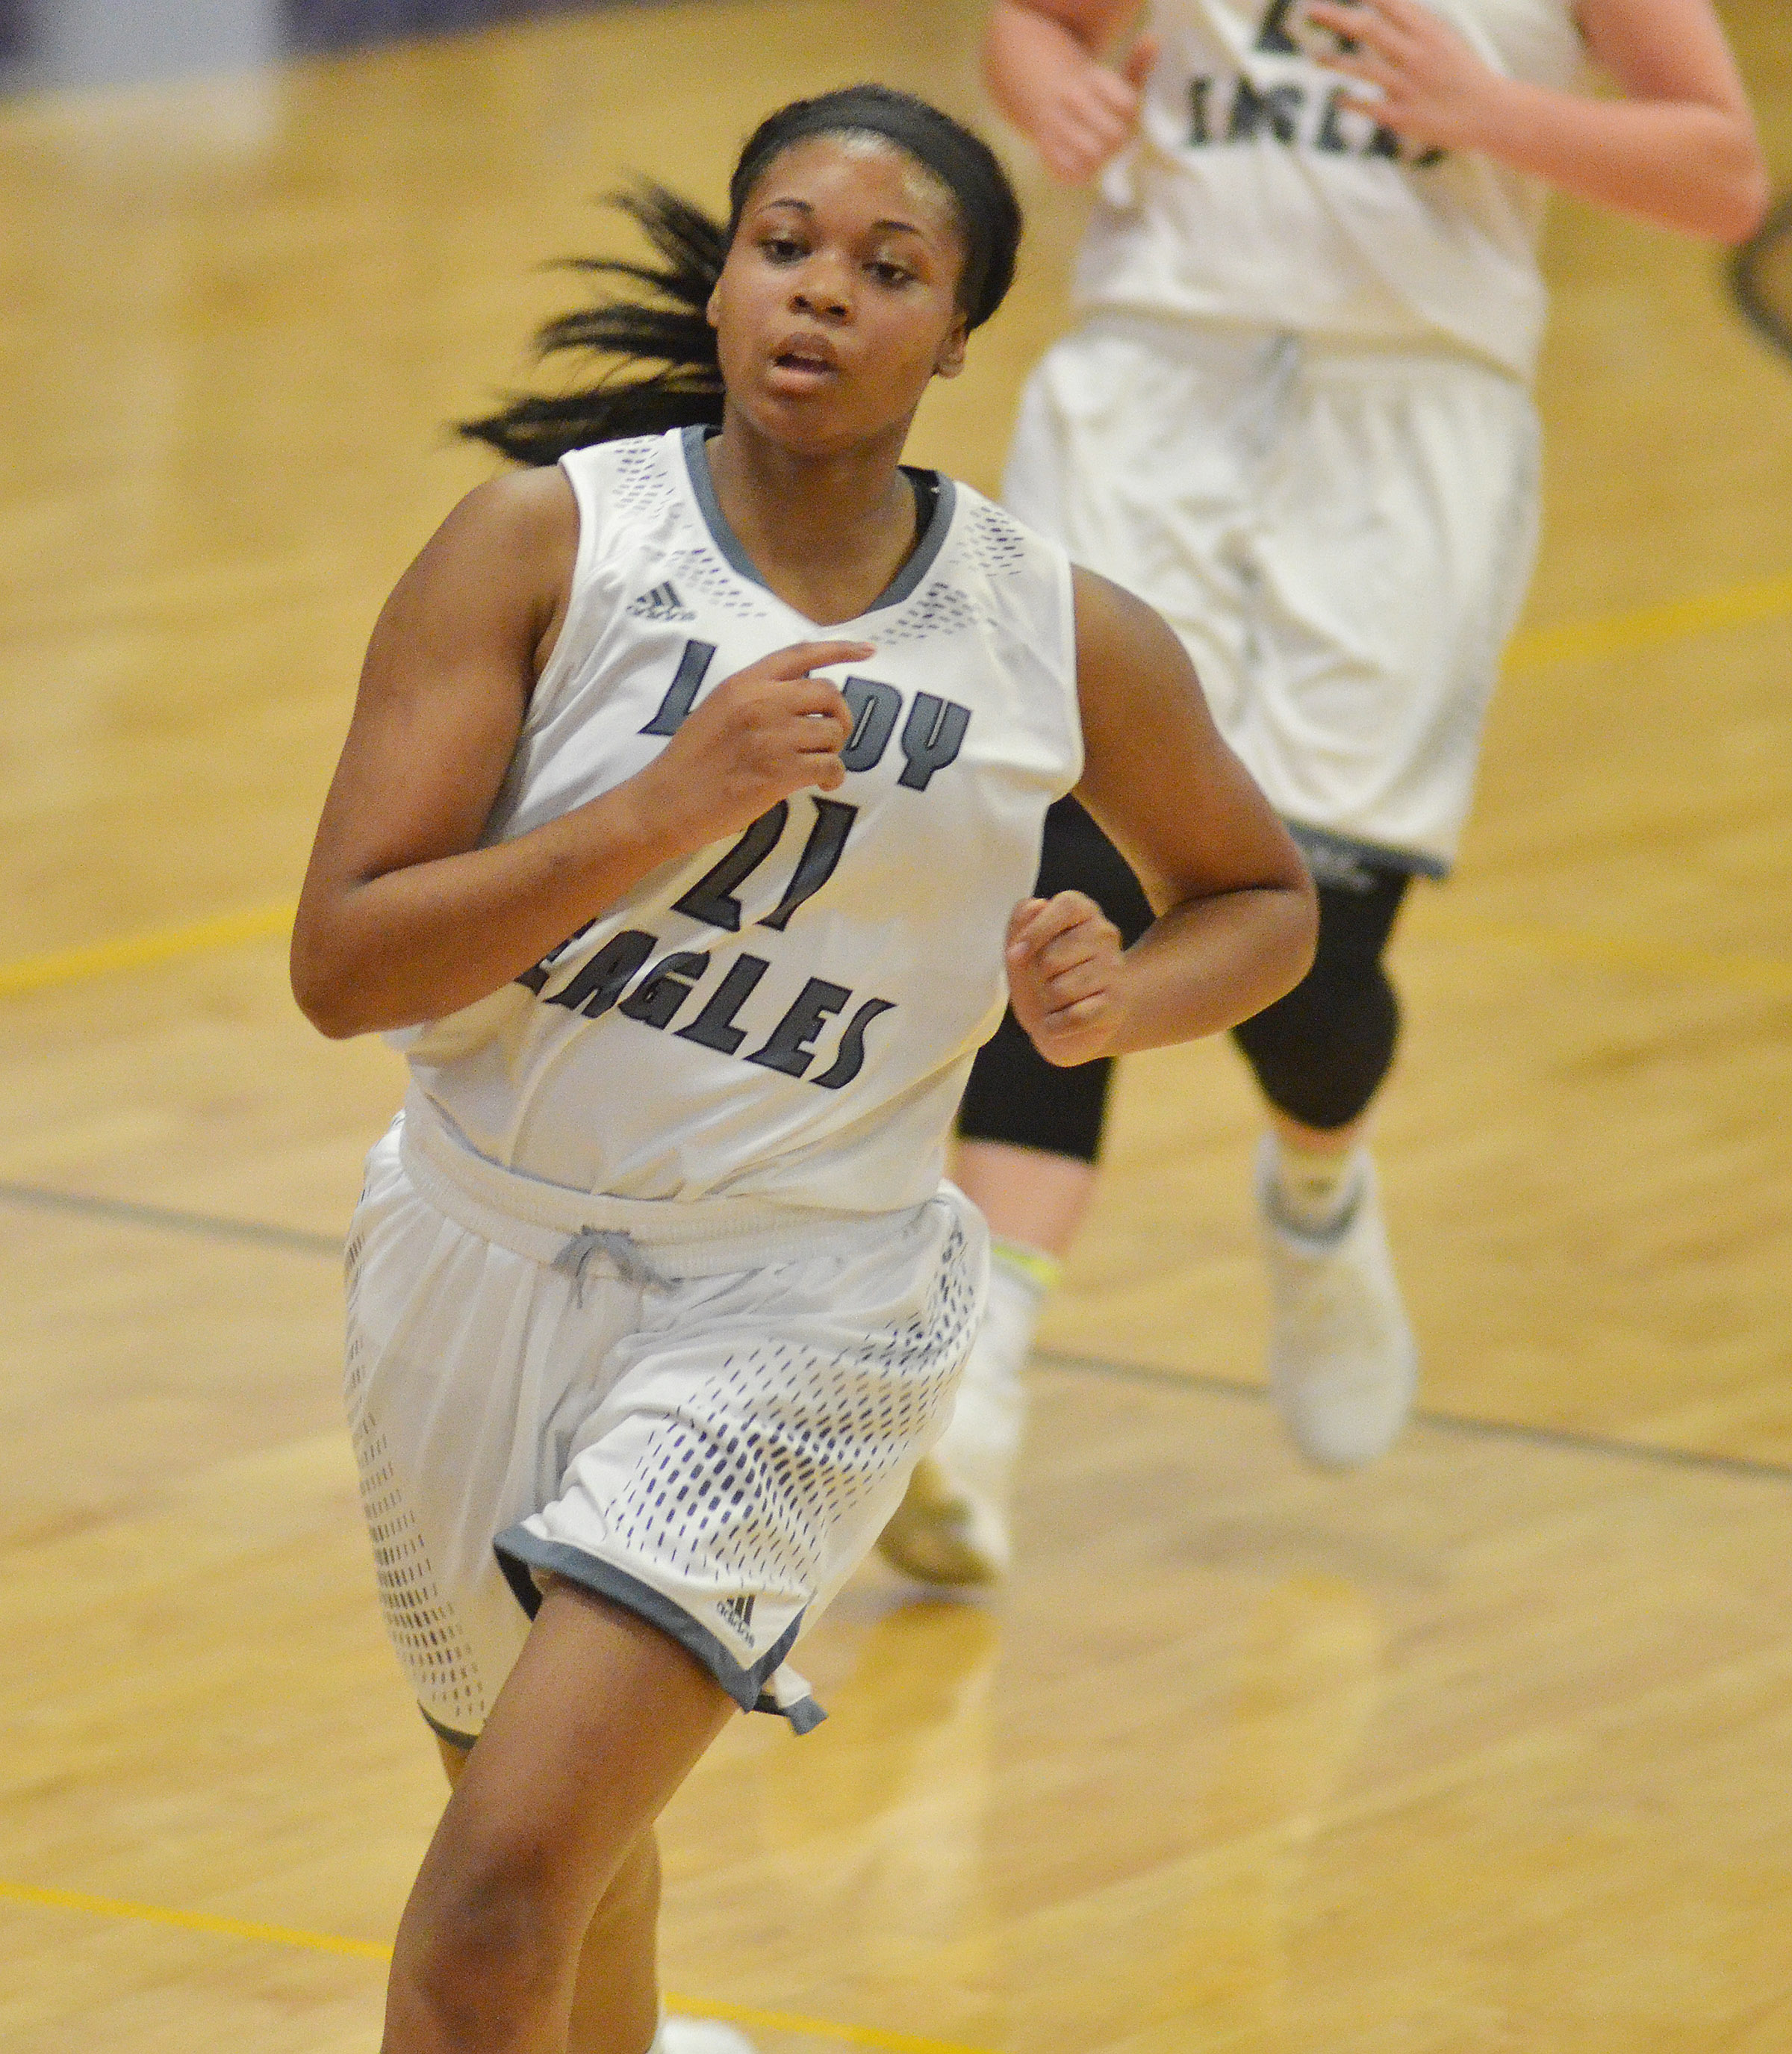 CHS senior Vonnea Smith runs down the court.